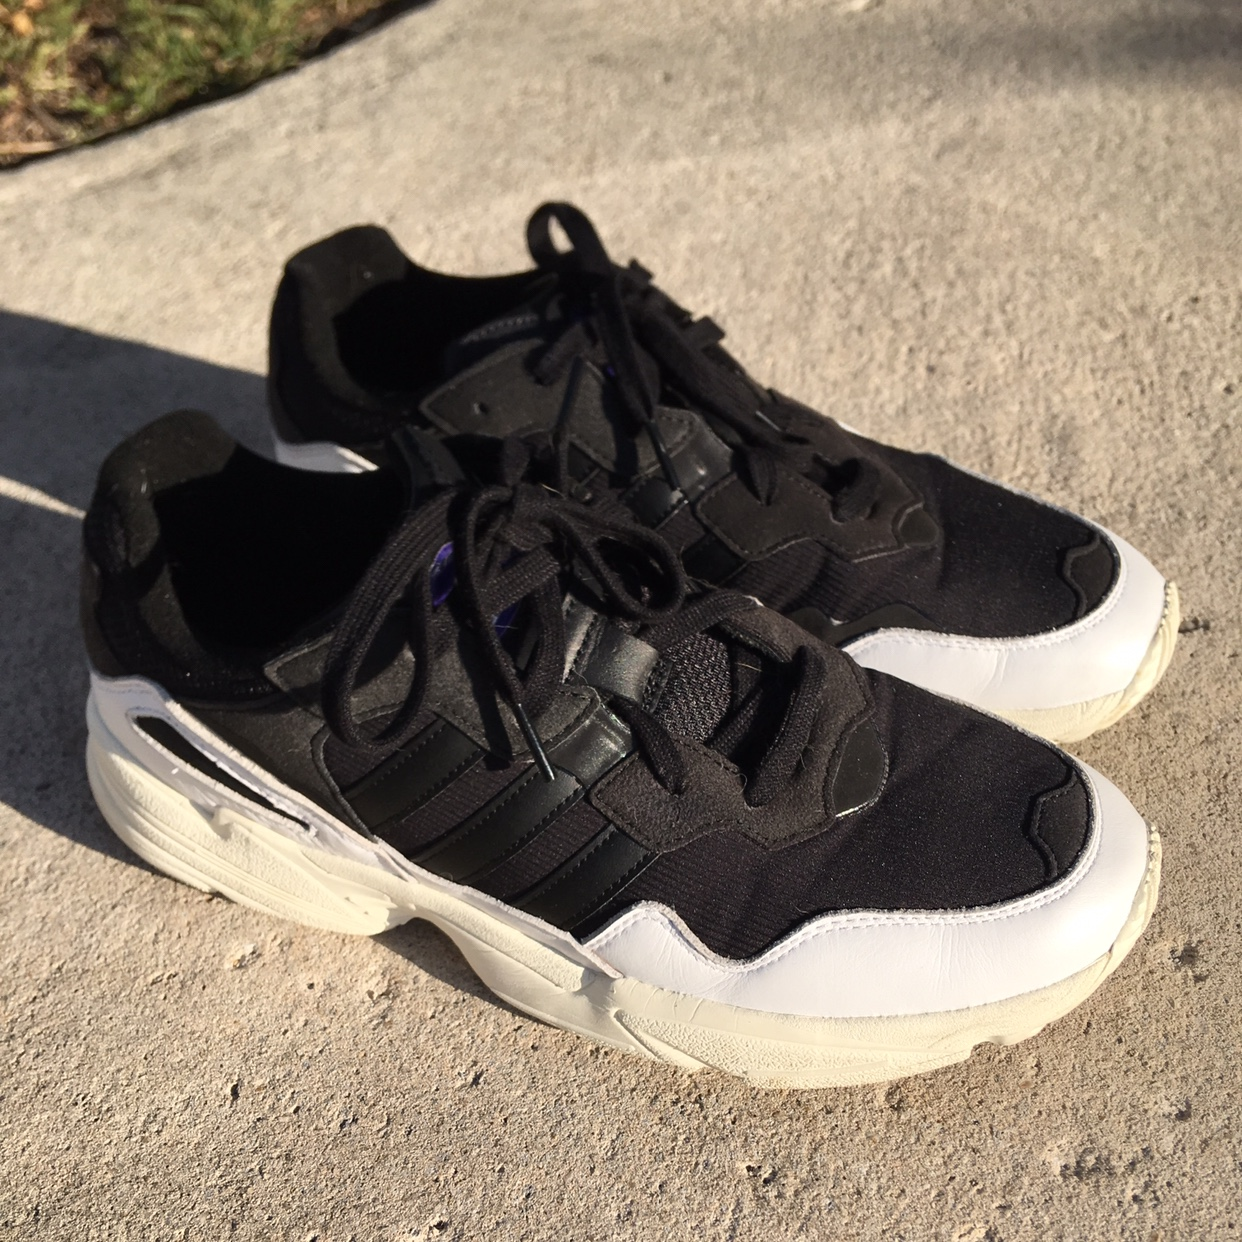 Adidas Yung 96 black/white in size 10.5